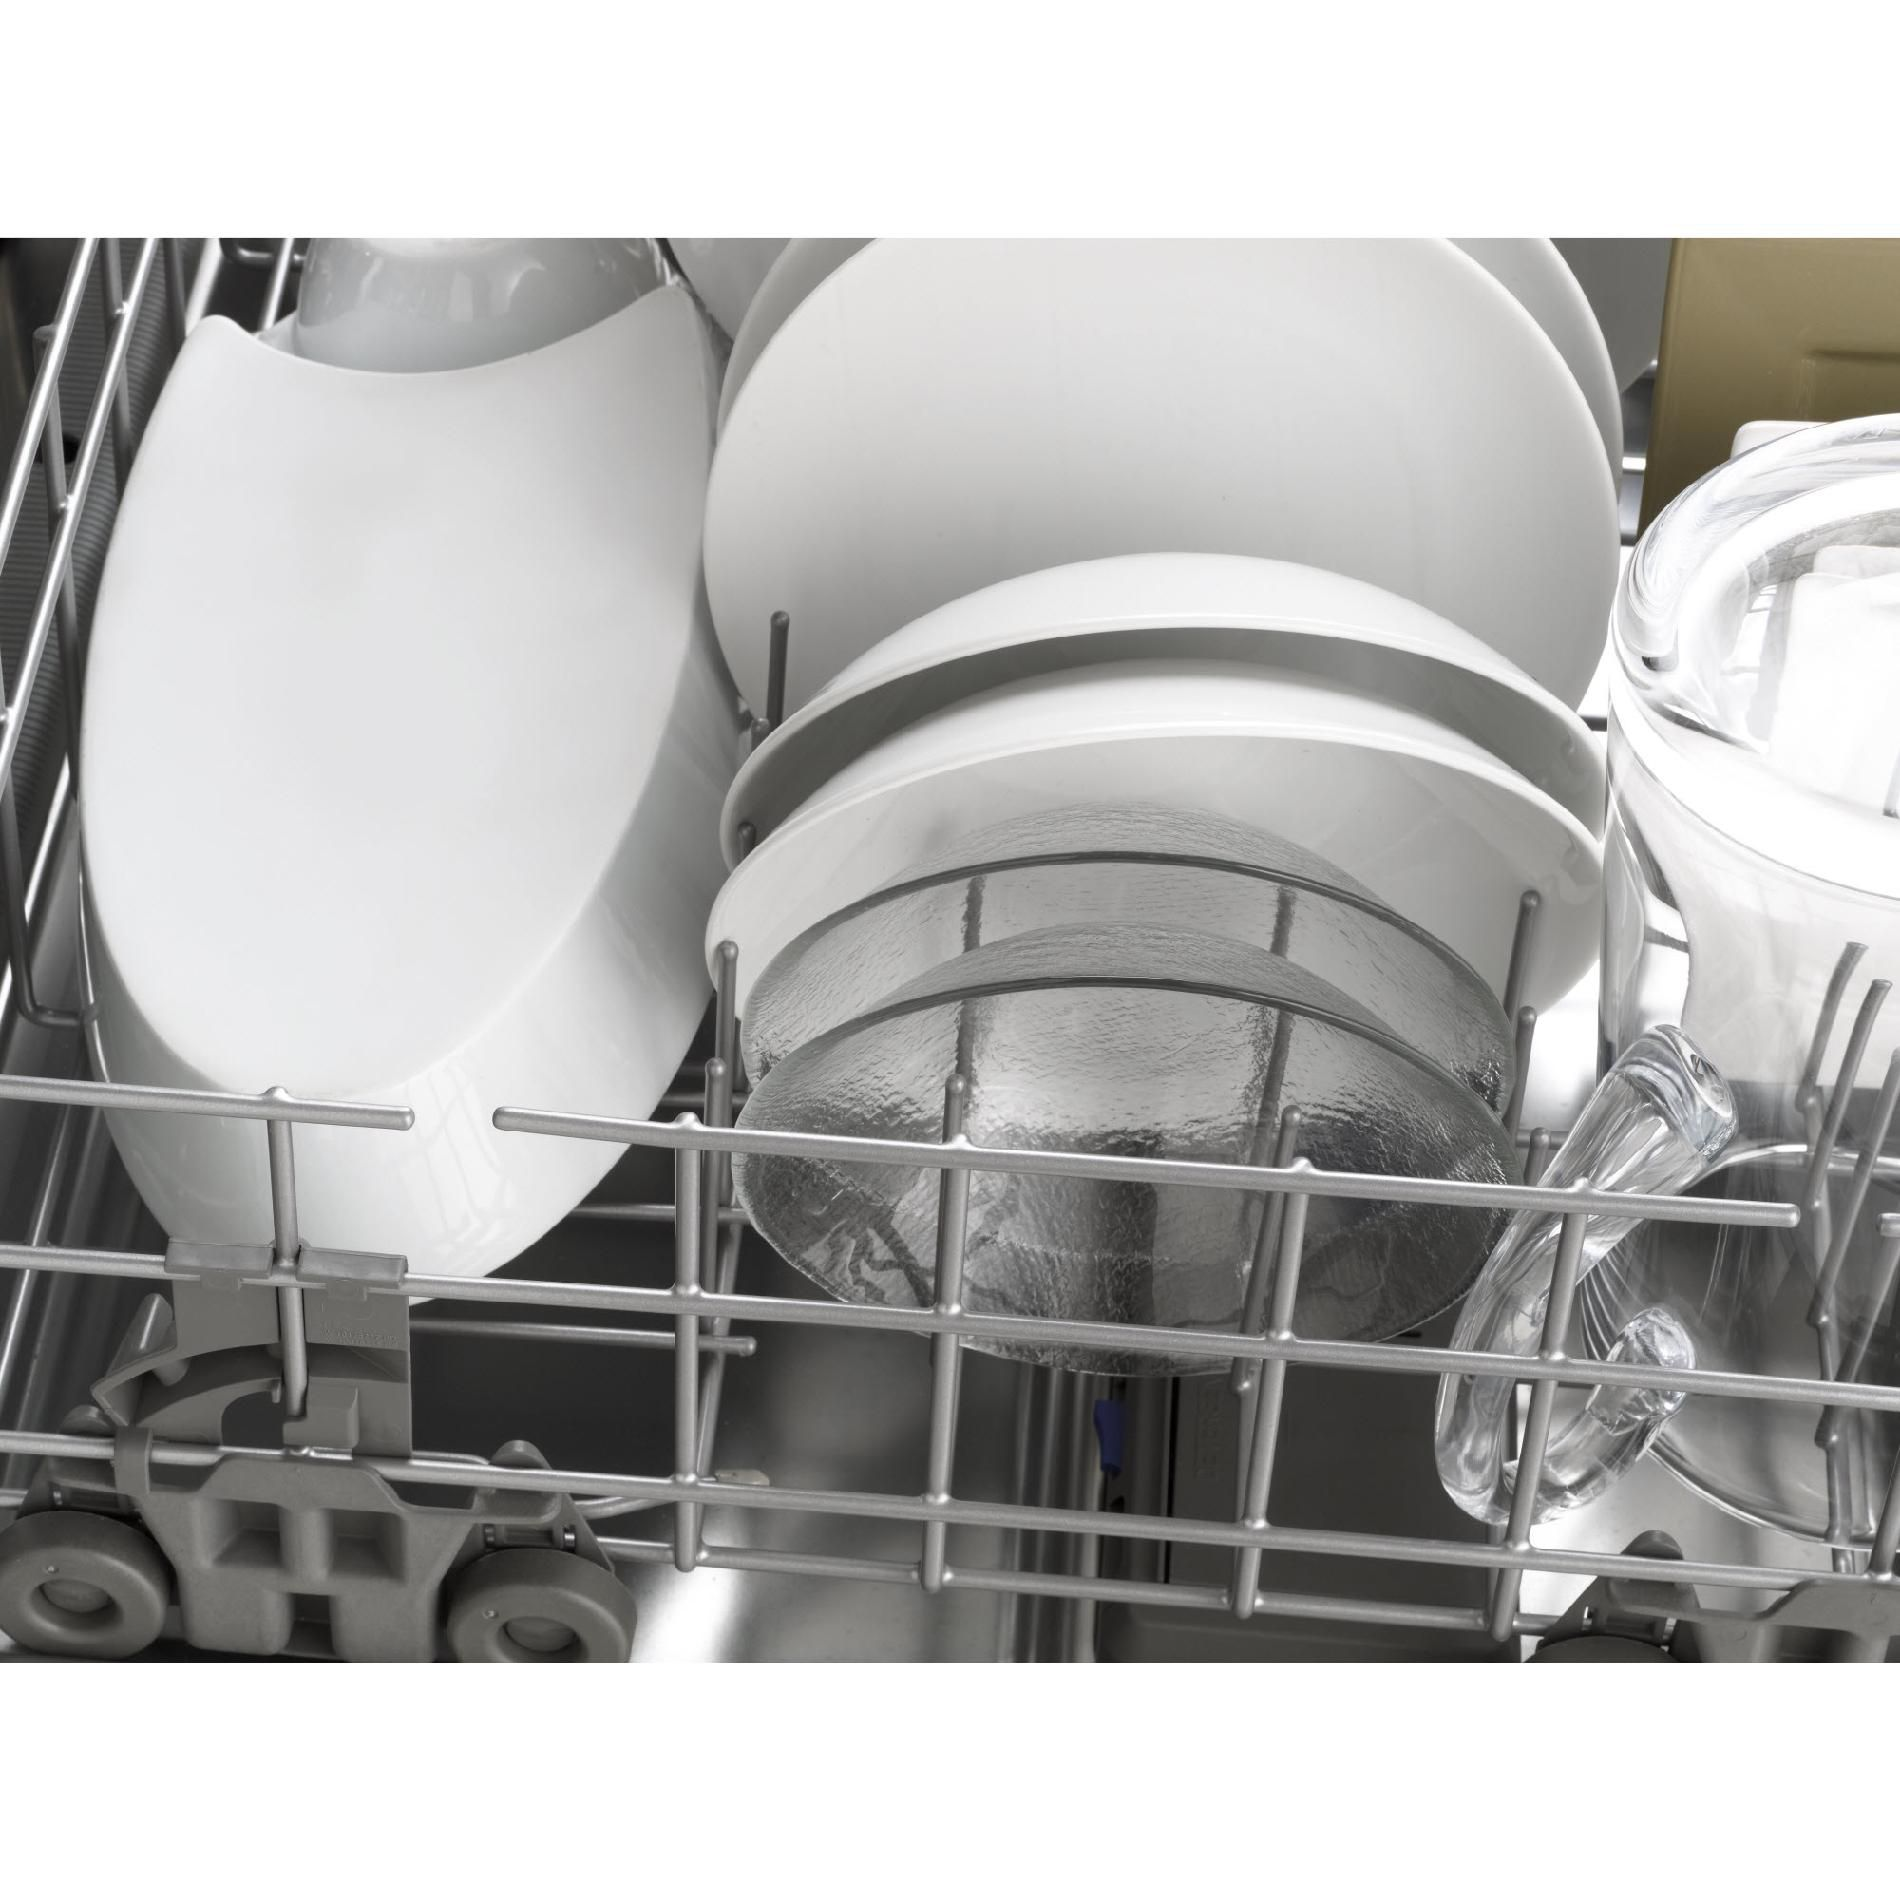 "KitchenAid Classic Series 24"" Built-In Dishwasher"